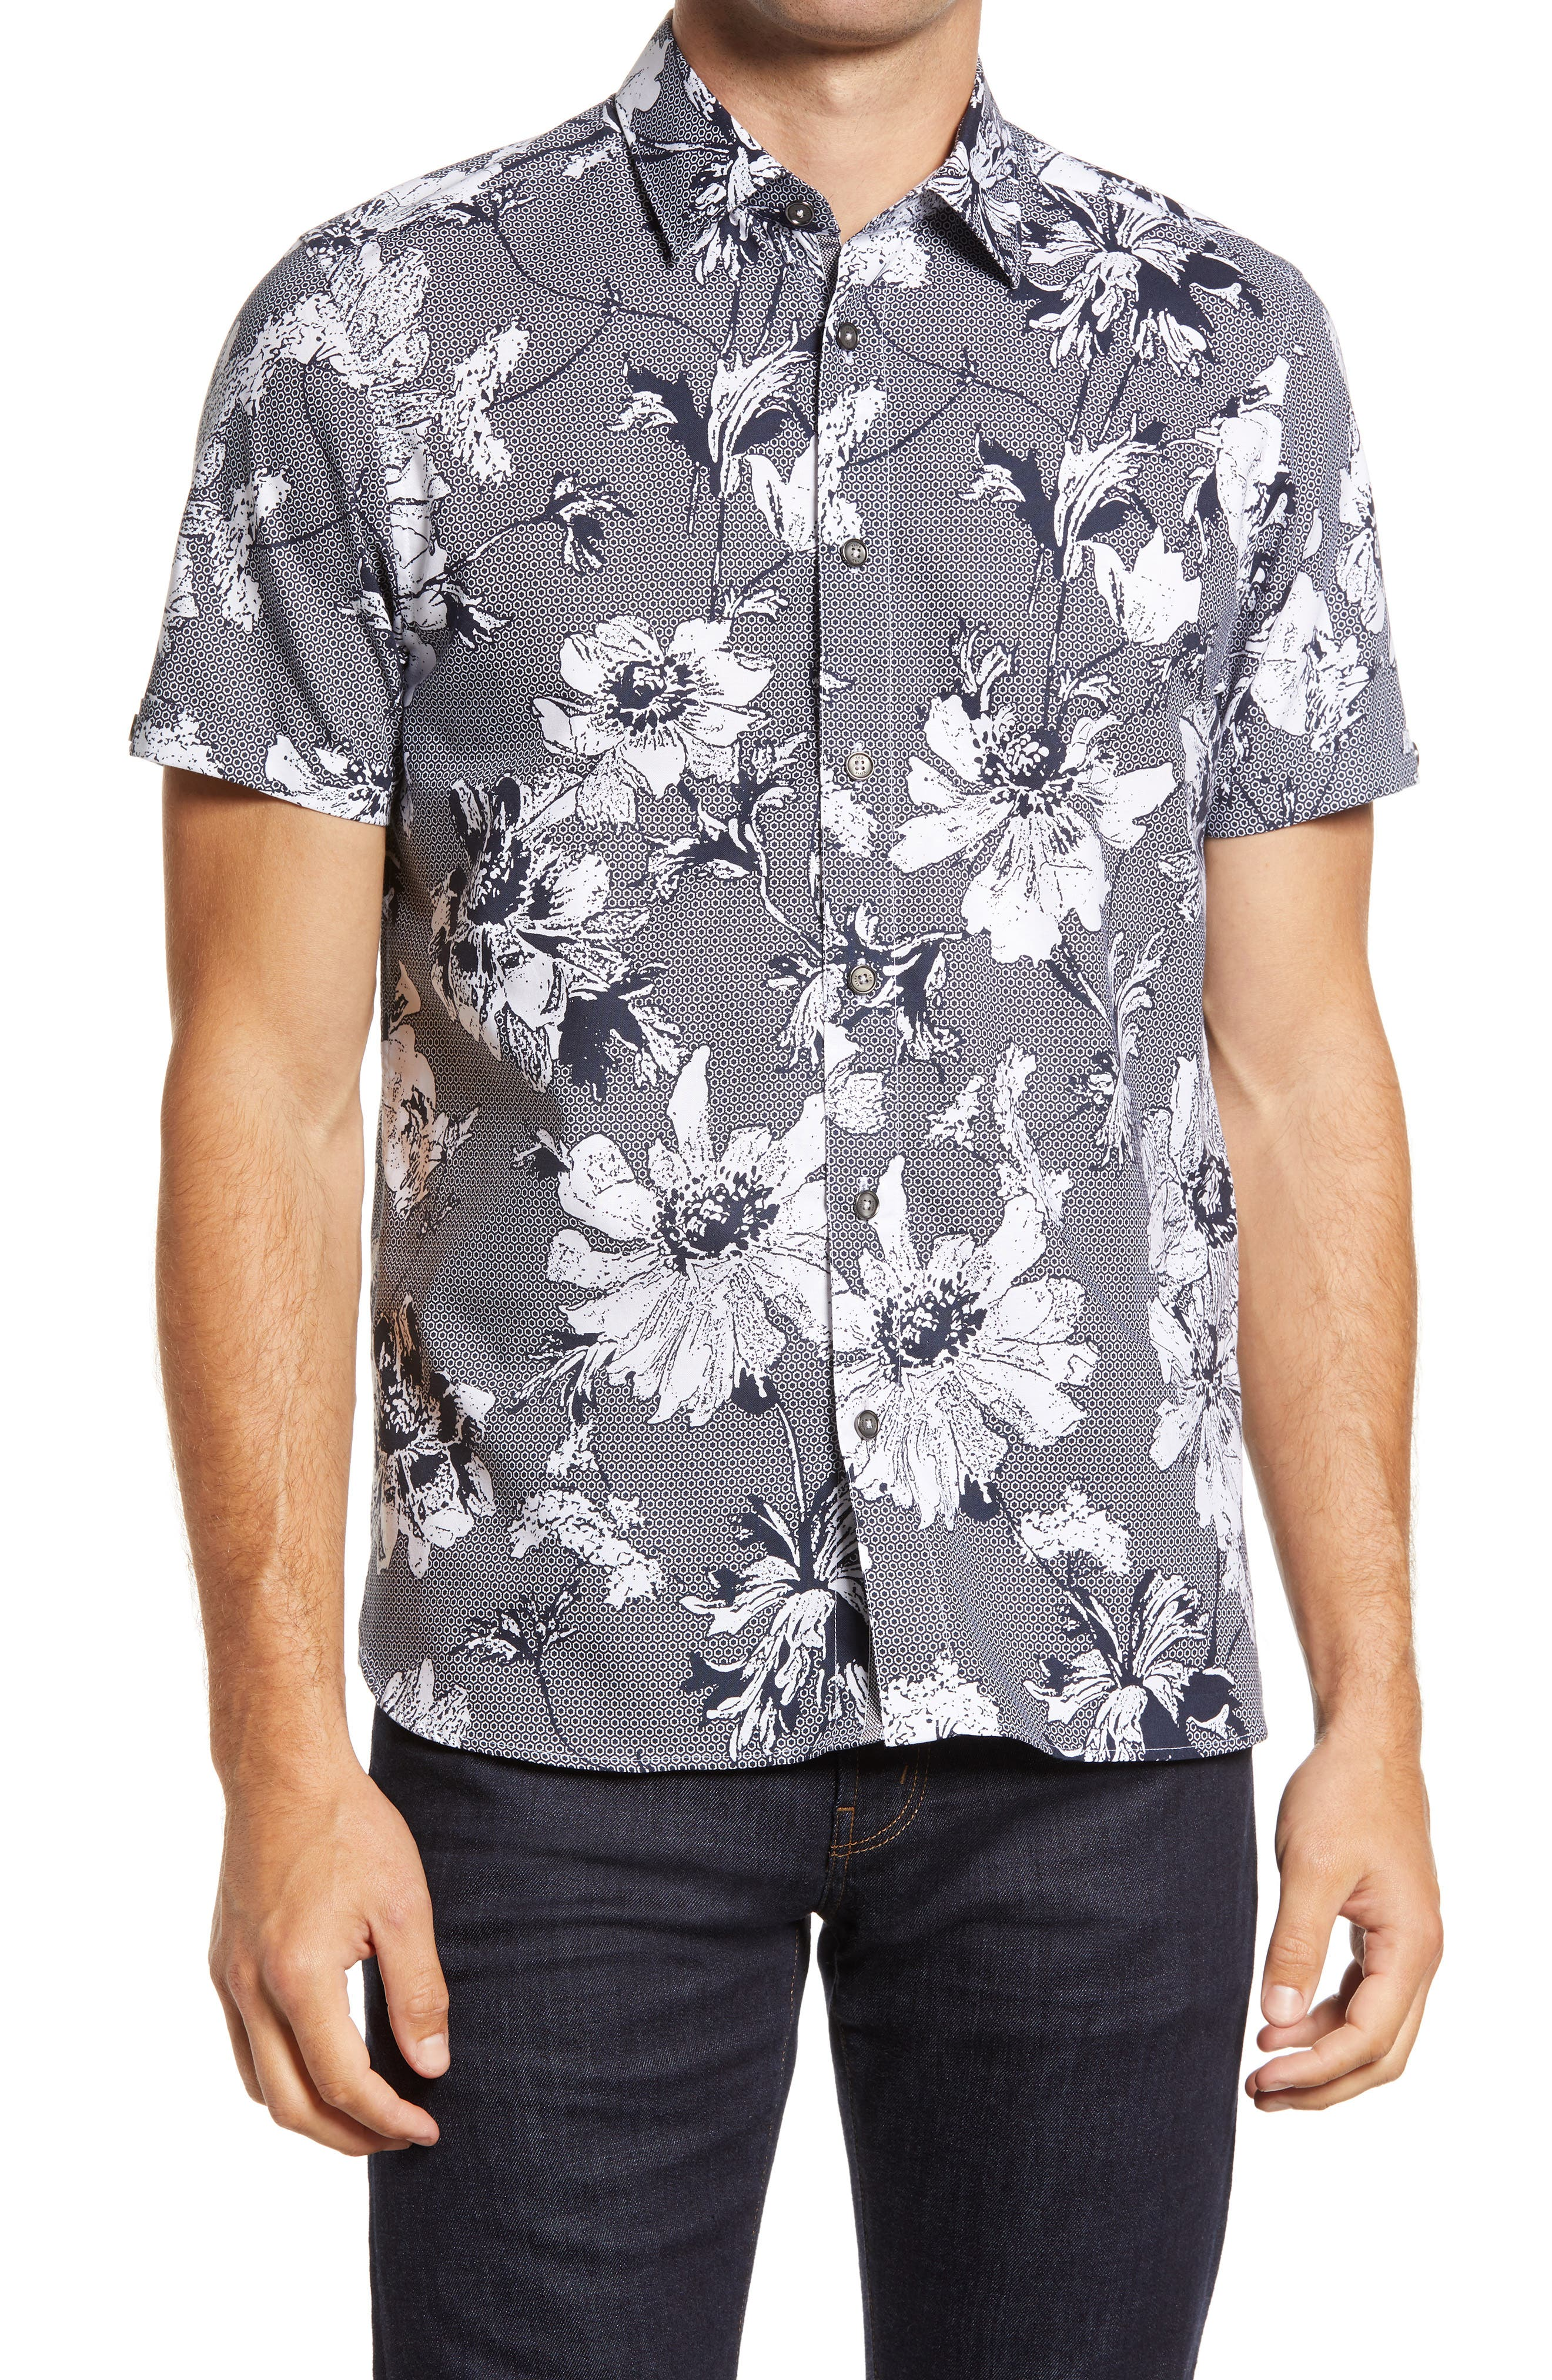 Mens Ultra Cotton Adult Short Sleeve T-Shirt Seamless floral Summer Pattern Background Hummingbird Palm Leaves floral Pretty